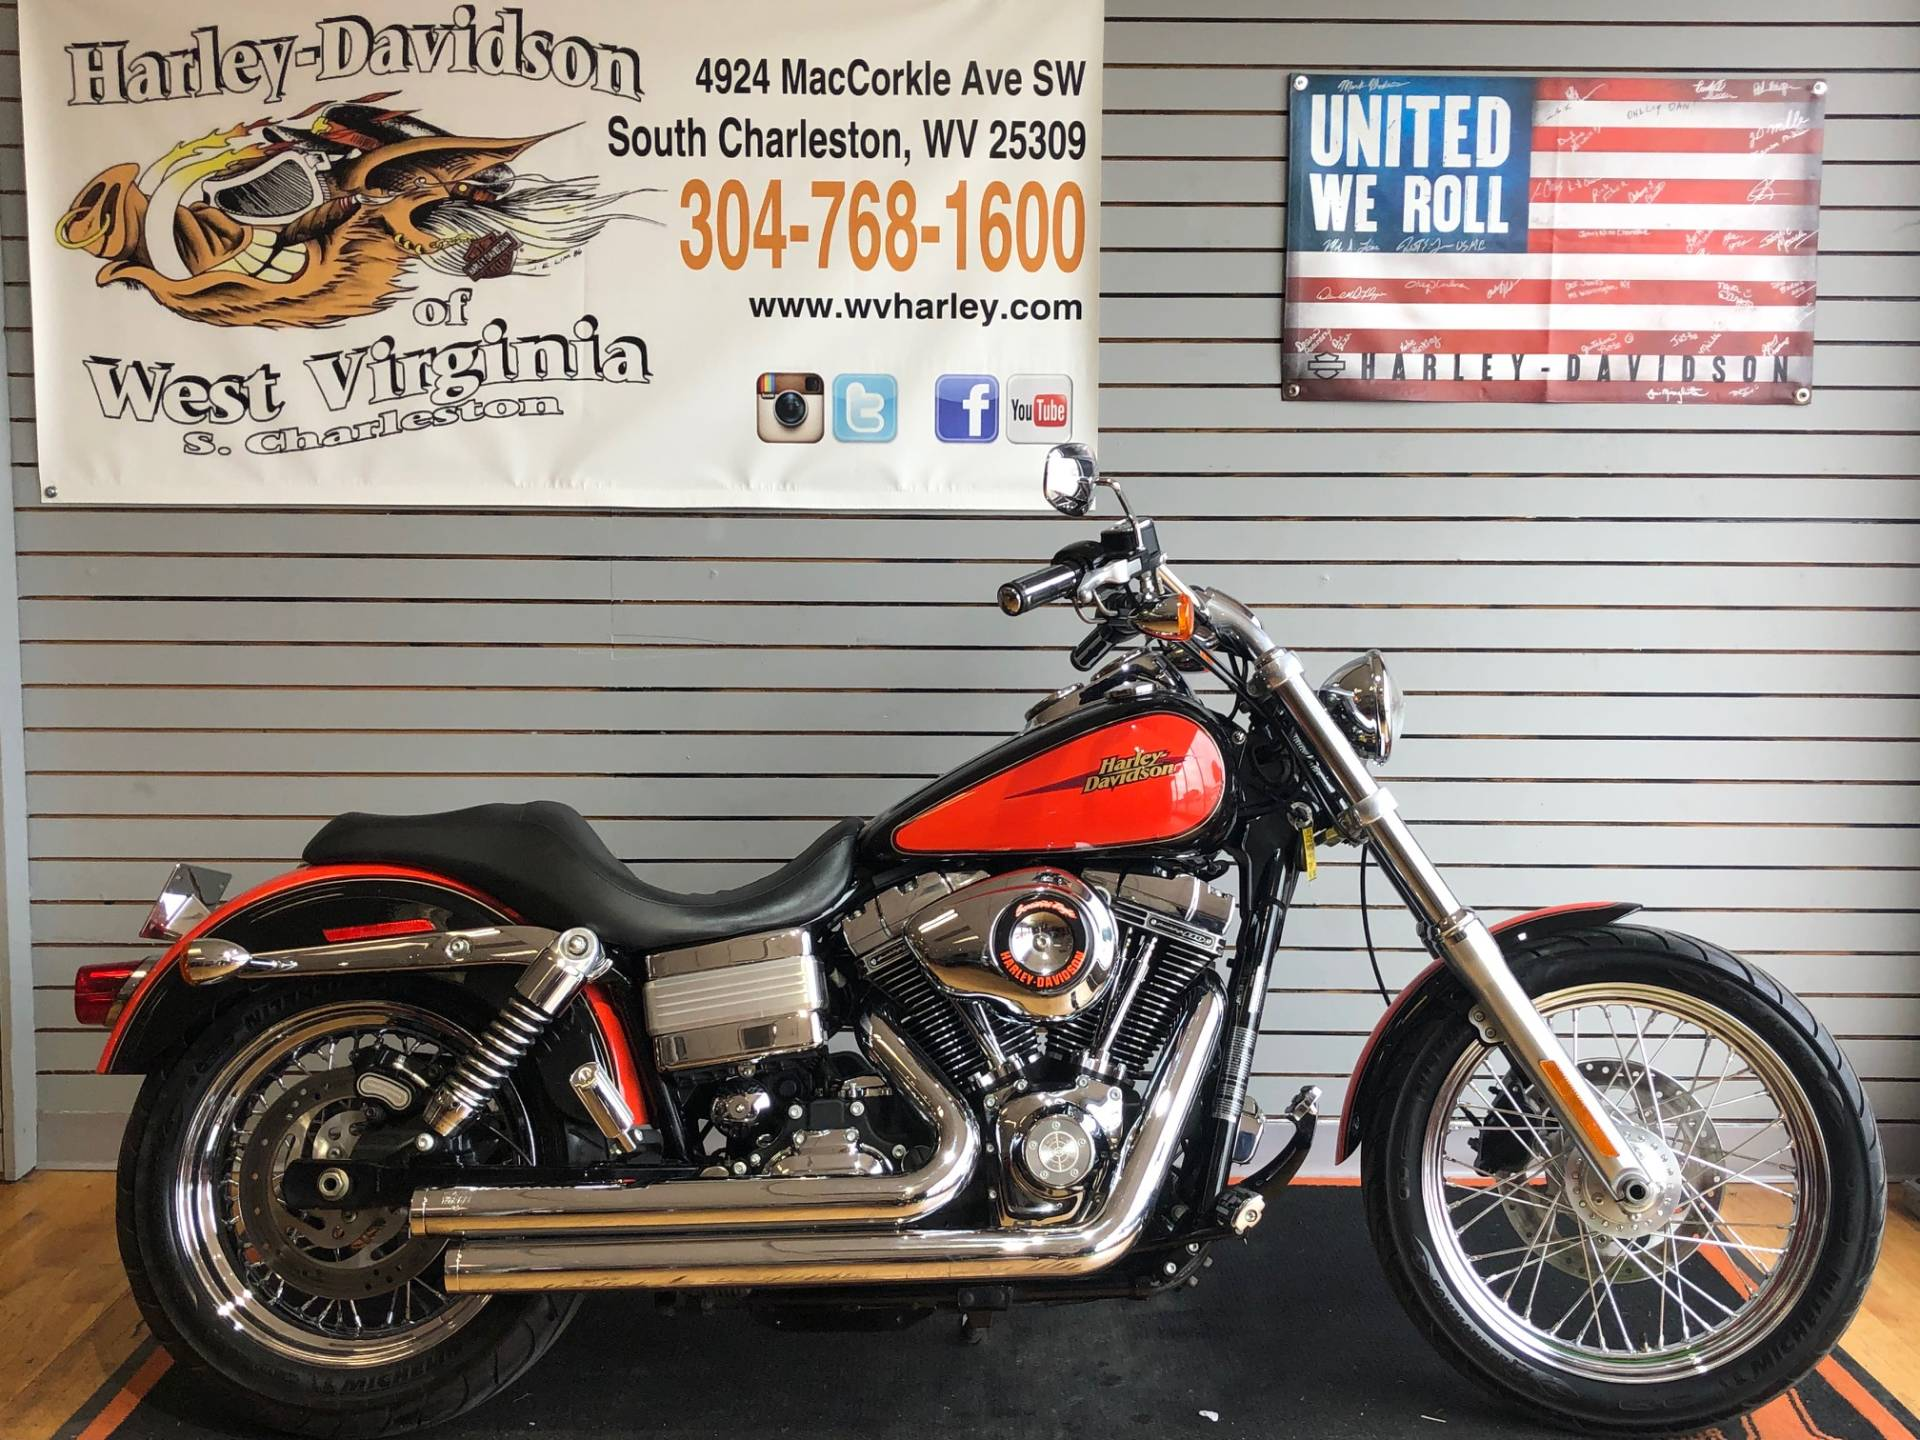 2009 Harley-Davidson FXDL in South Charleston, West Virginia - Photo 1